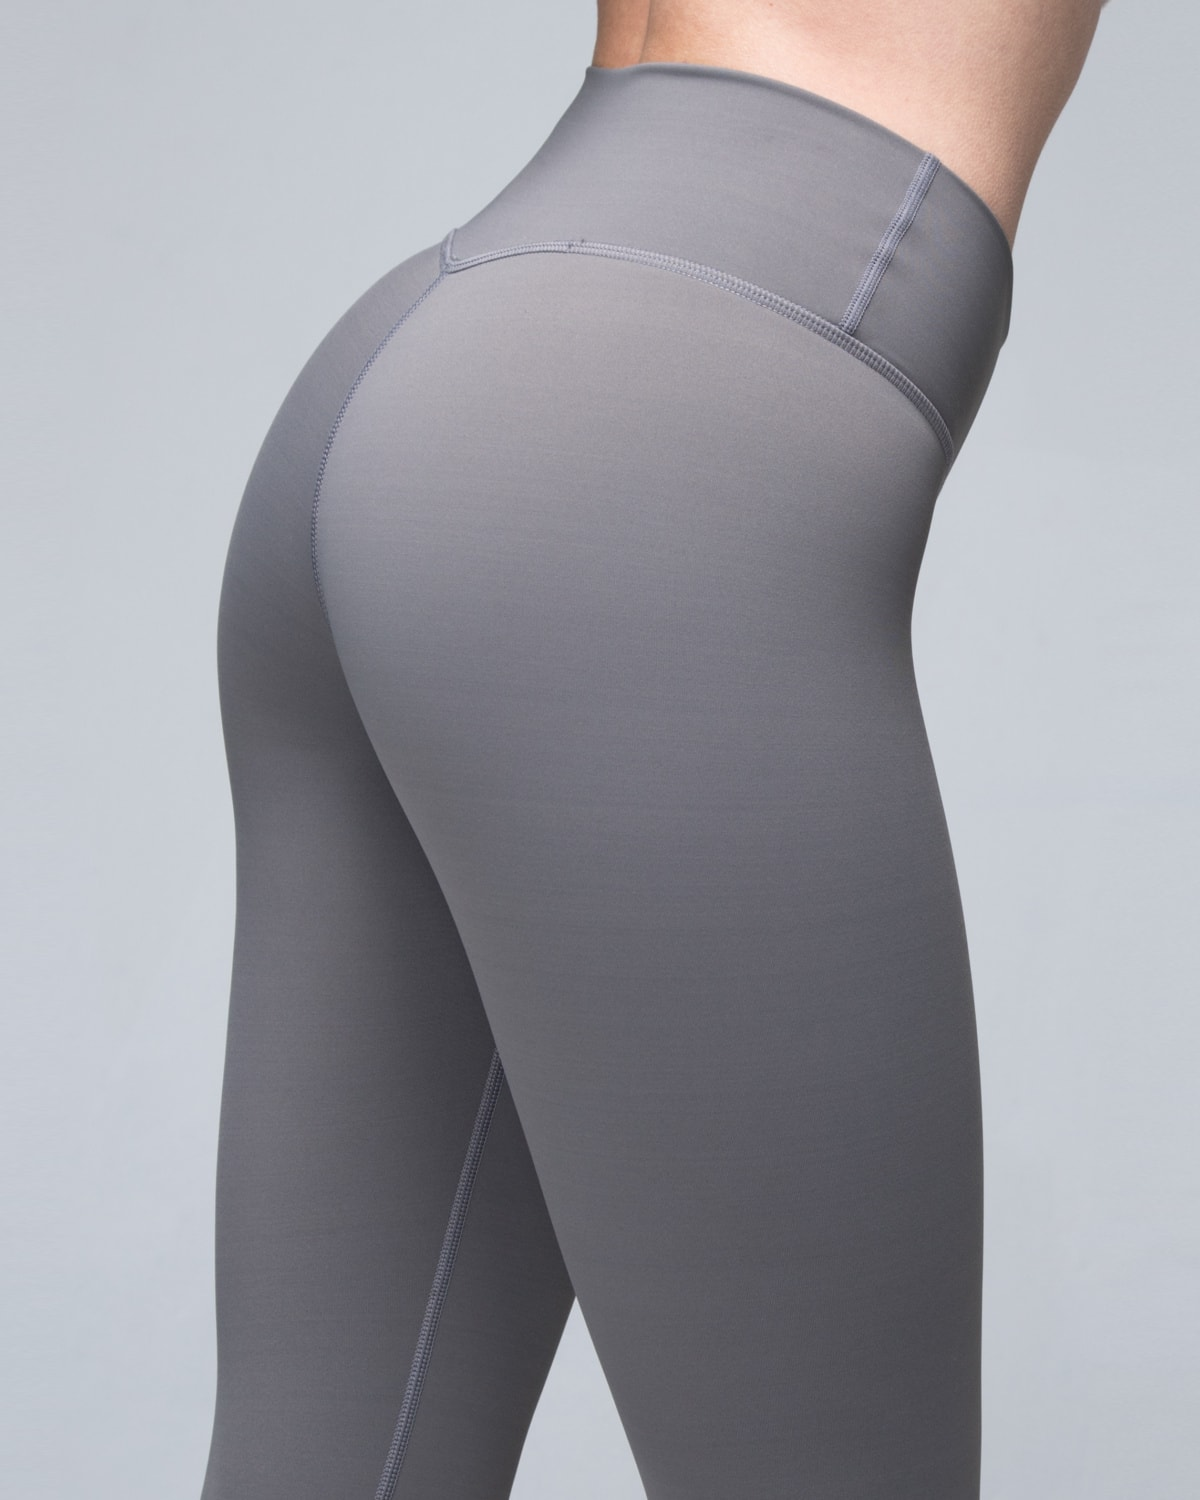 Famme Grey Essential Tights5